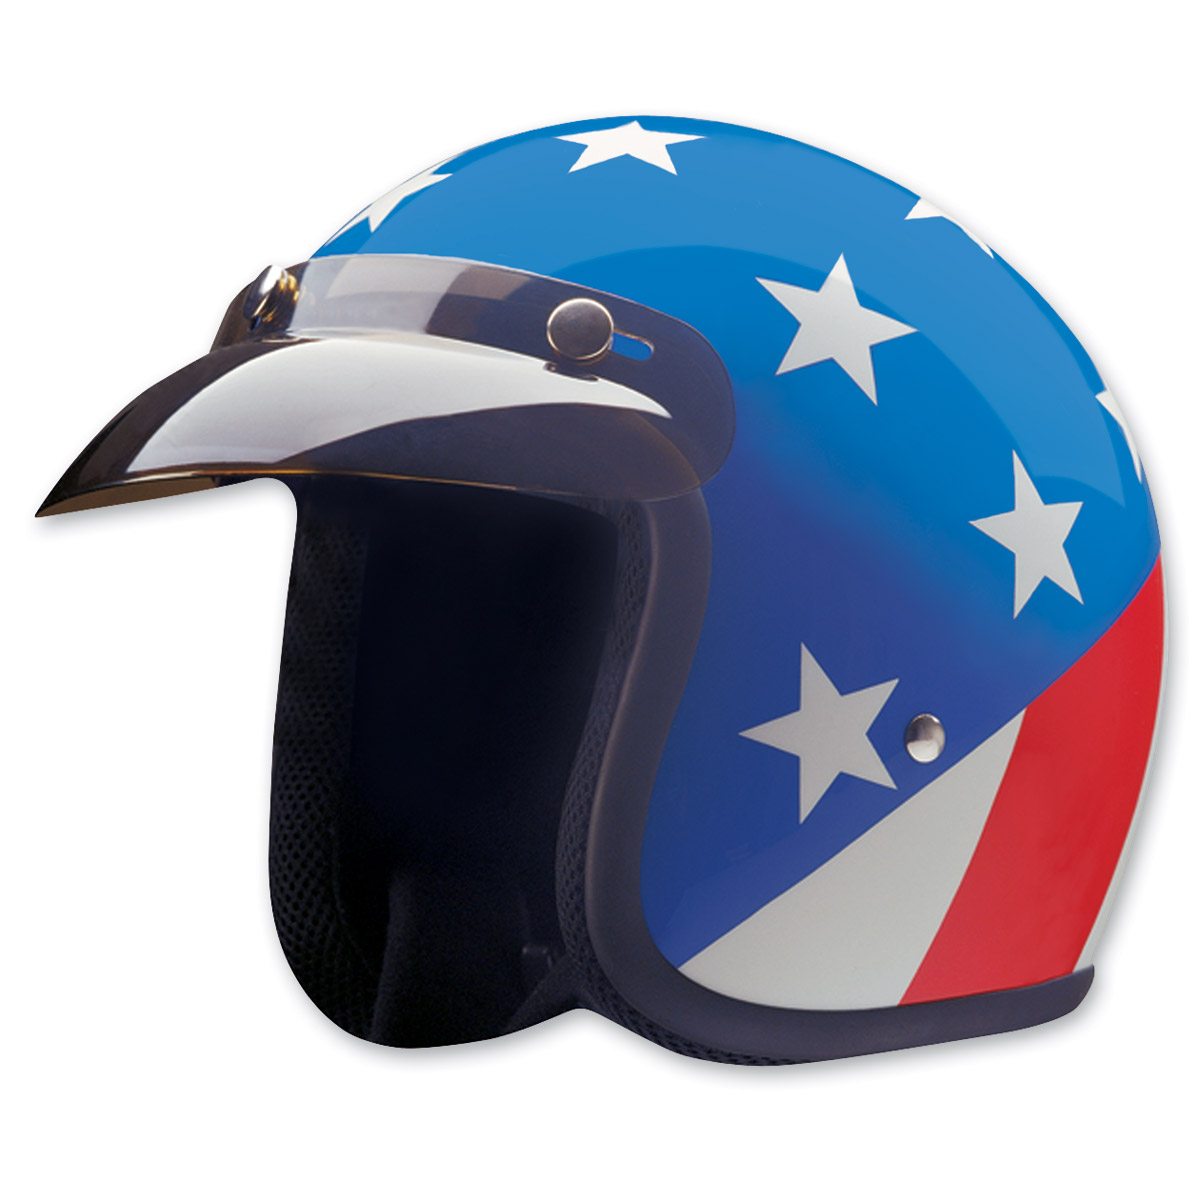 HCI-10 Captain America Red, White and Blue Open Face Helmet